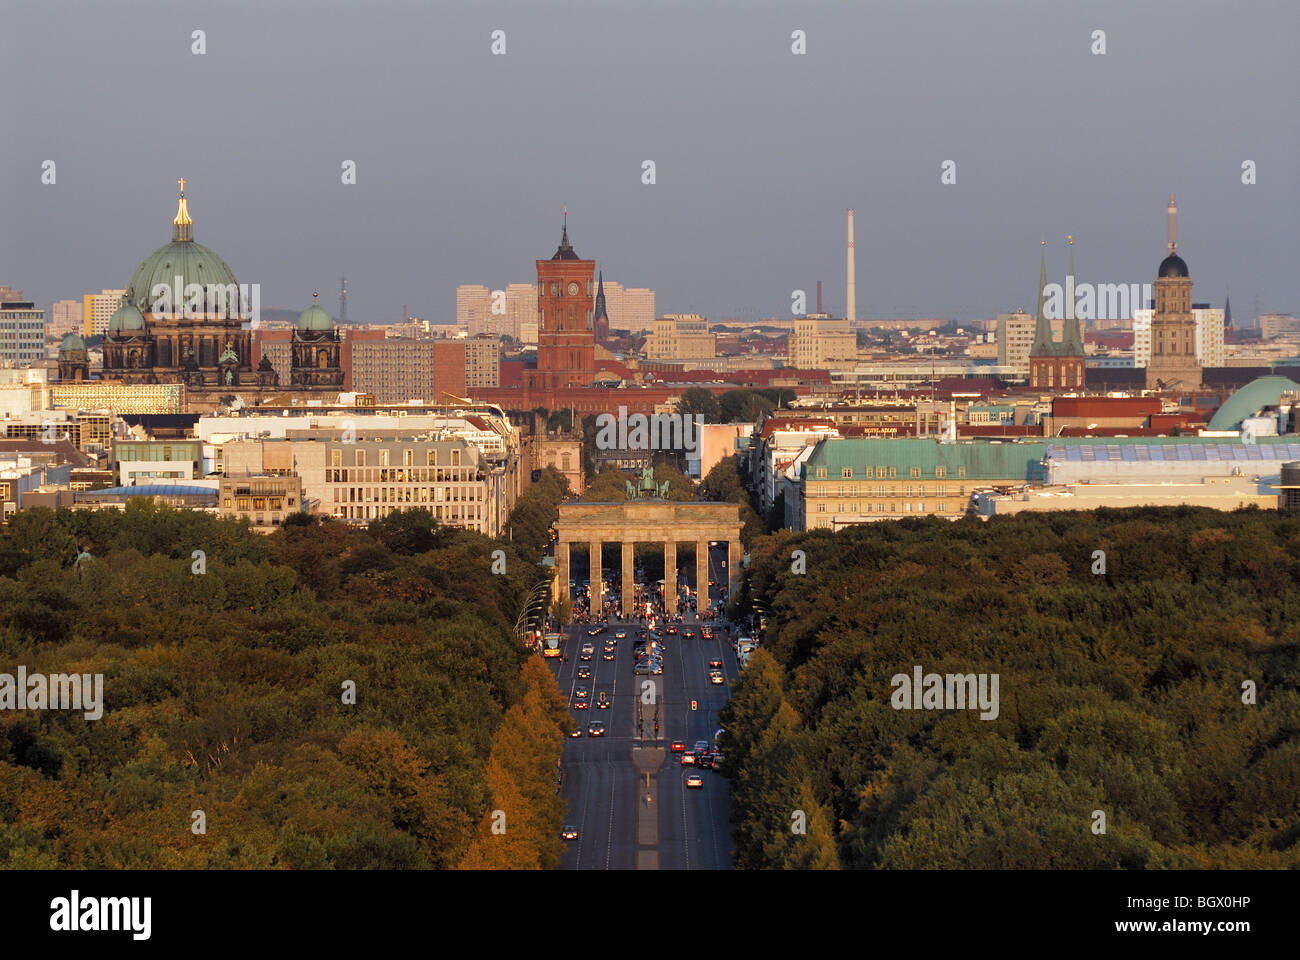 Berlin. Germany. View across the Tiergarten and Strasse des 17 Juni towards the Brandenburg Gate & Mitte. - Stock Image